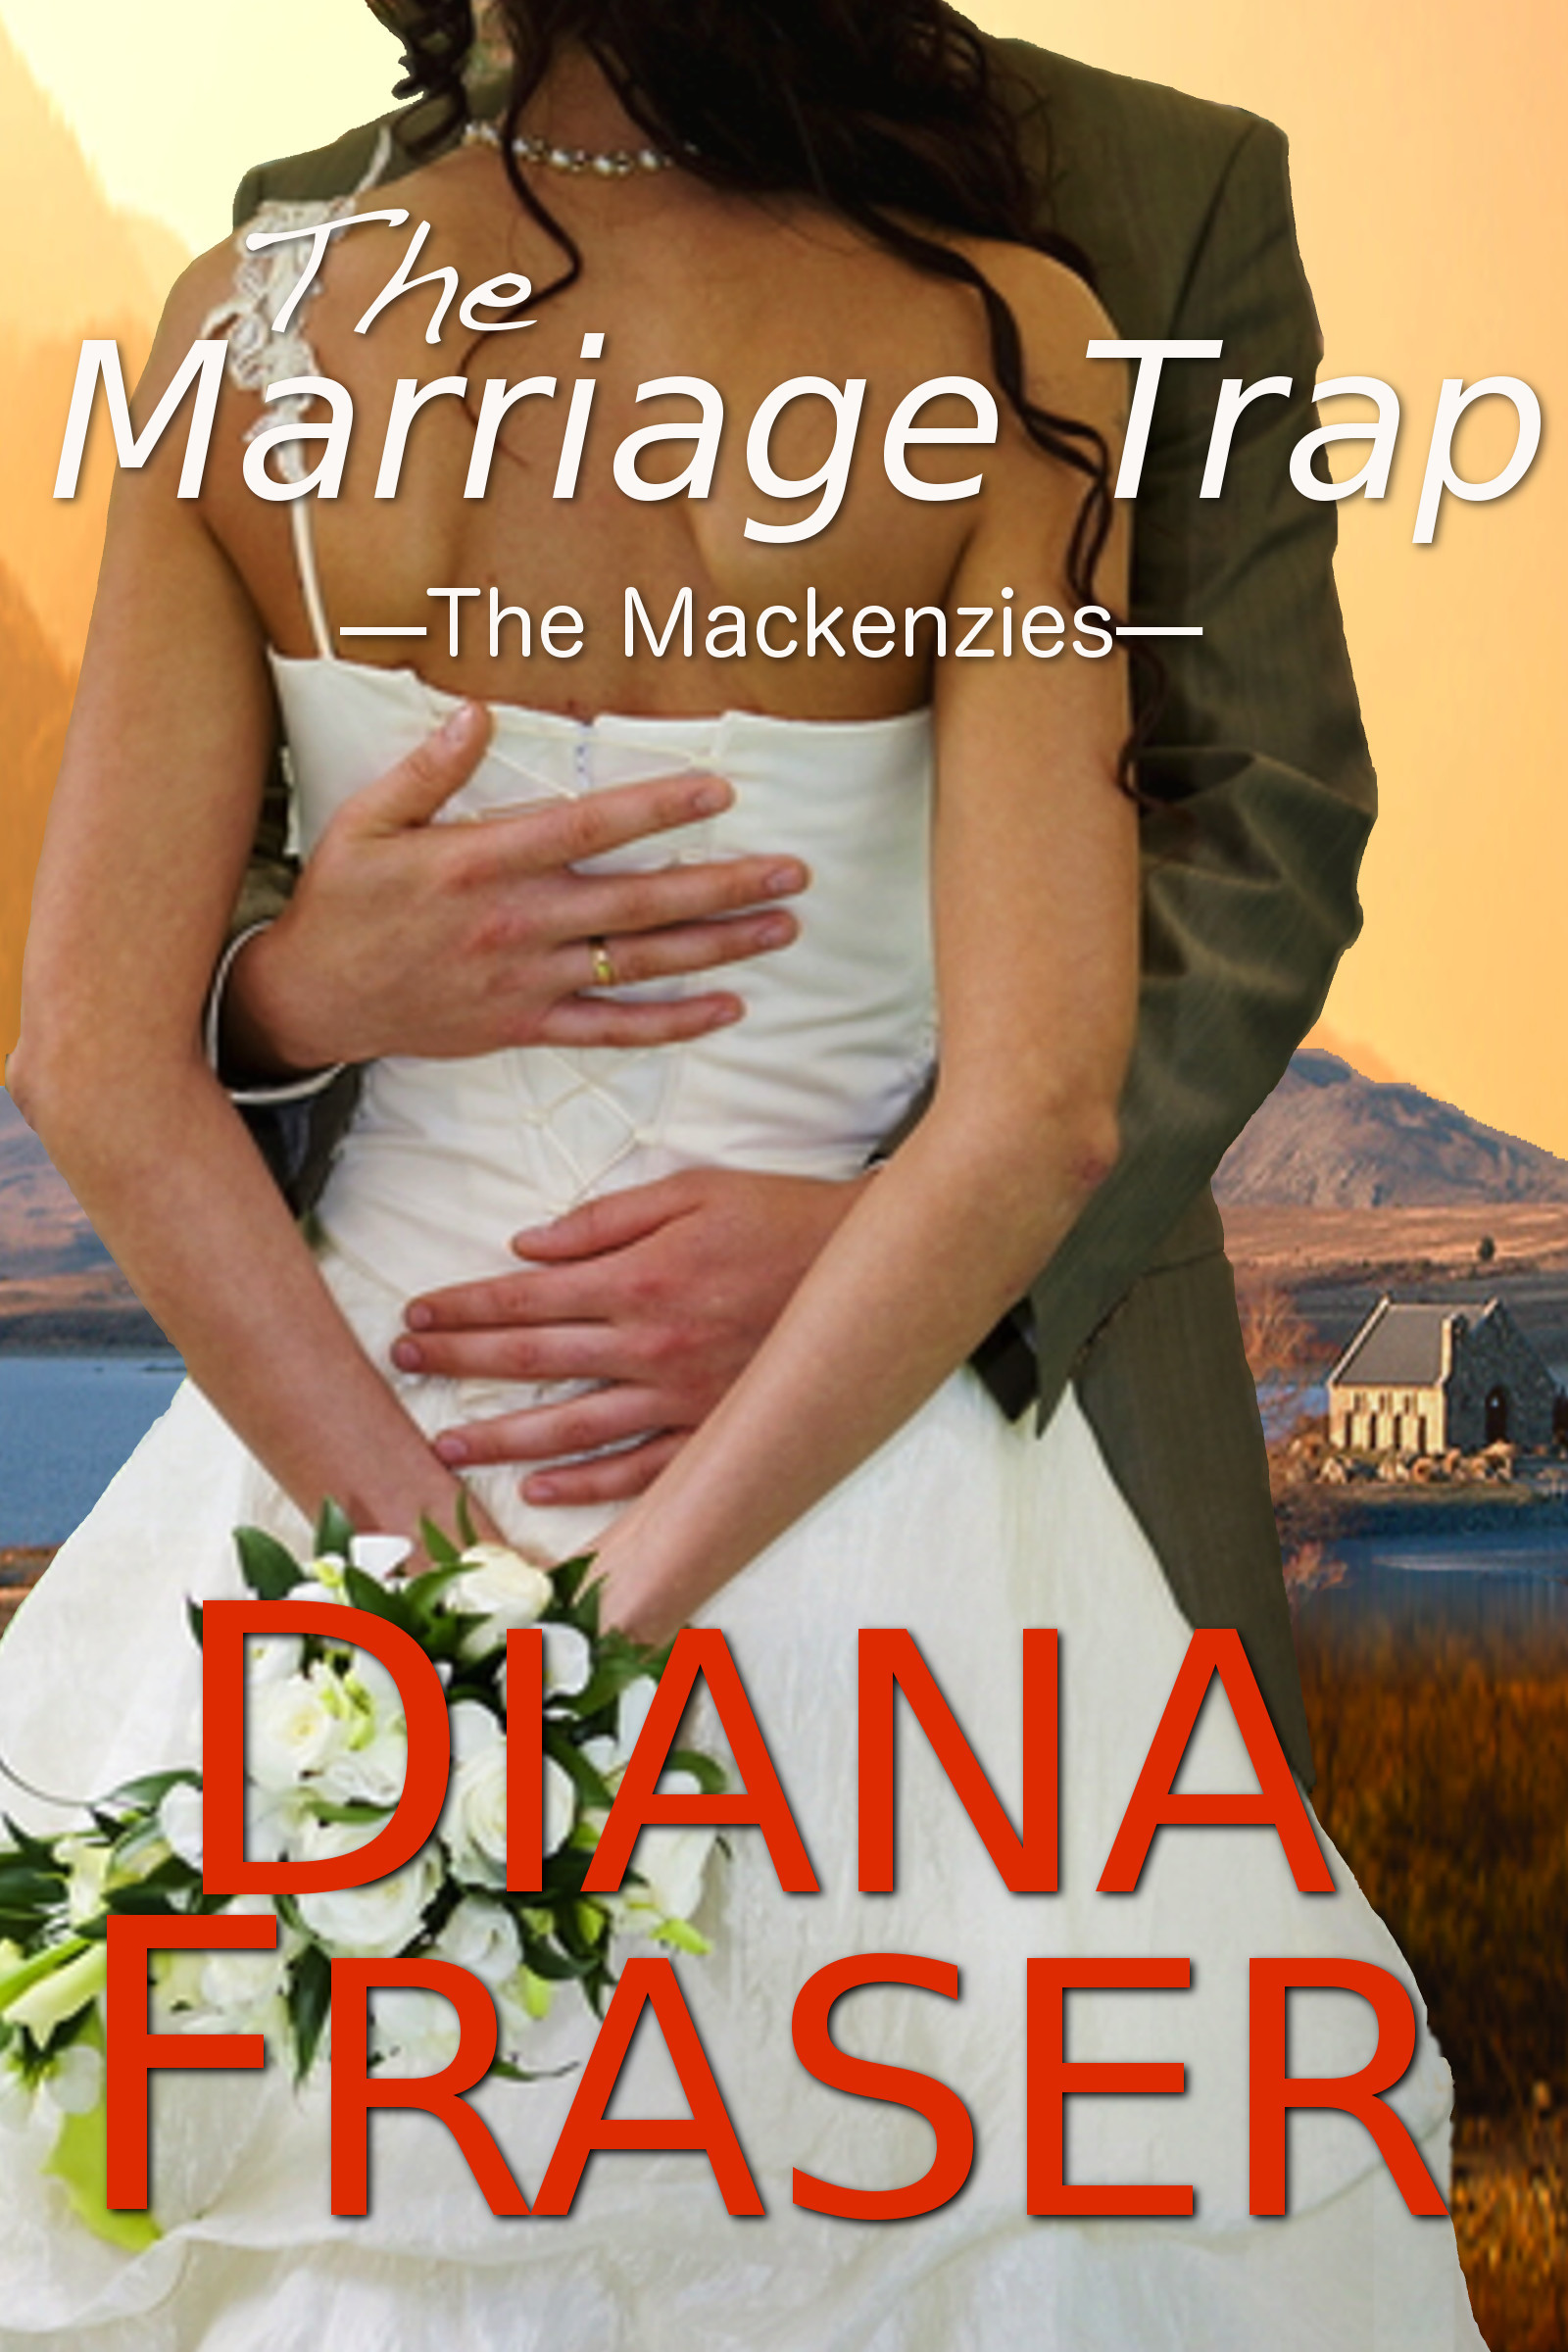 The Marriage Trap (Book 2, The Mackenzies)